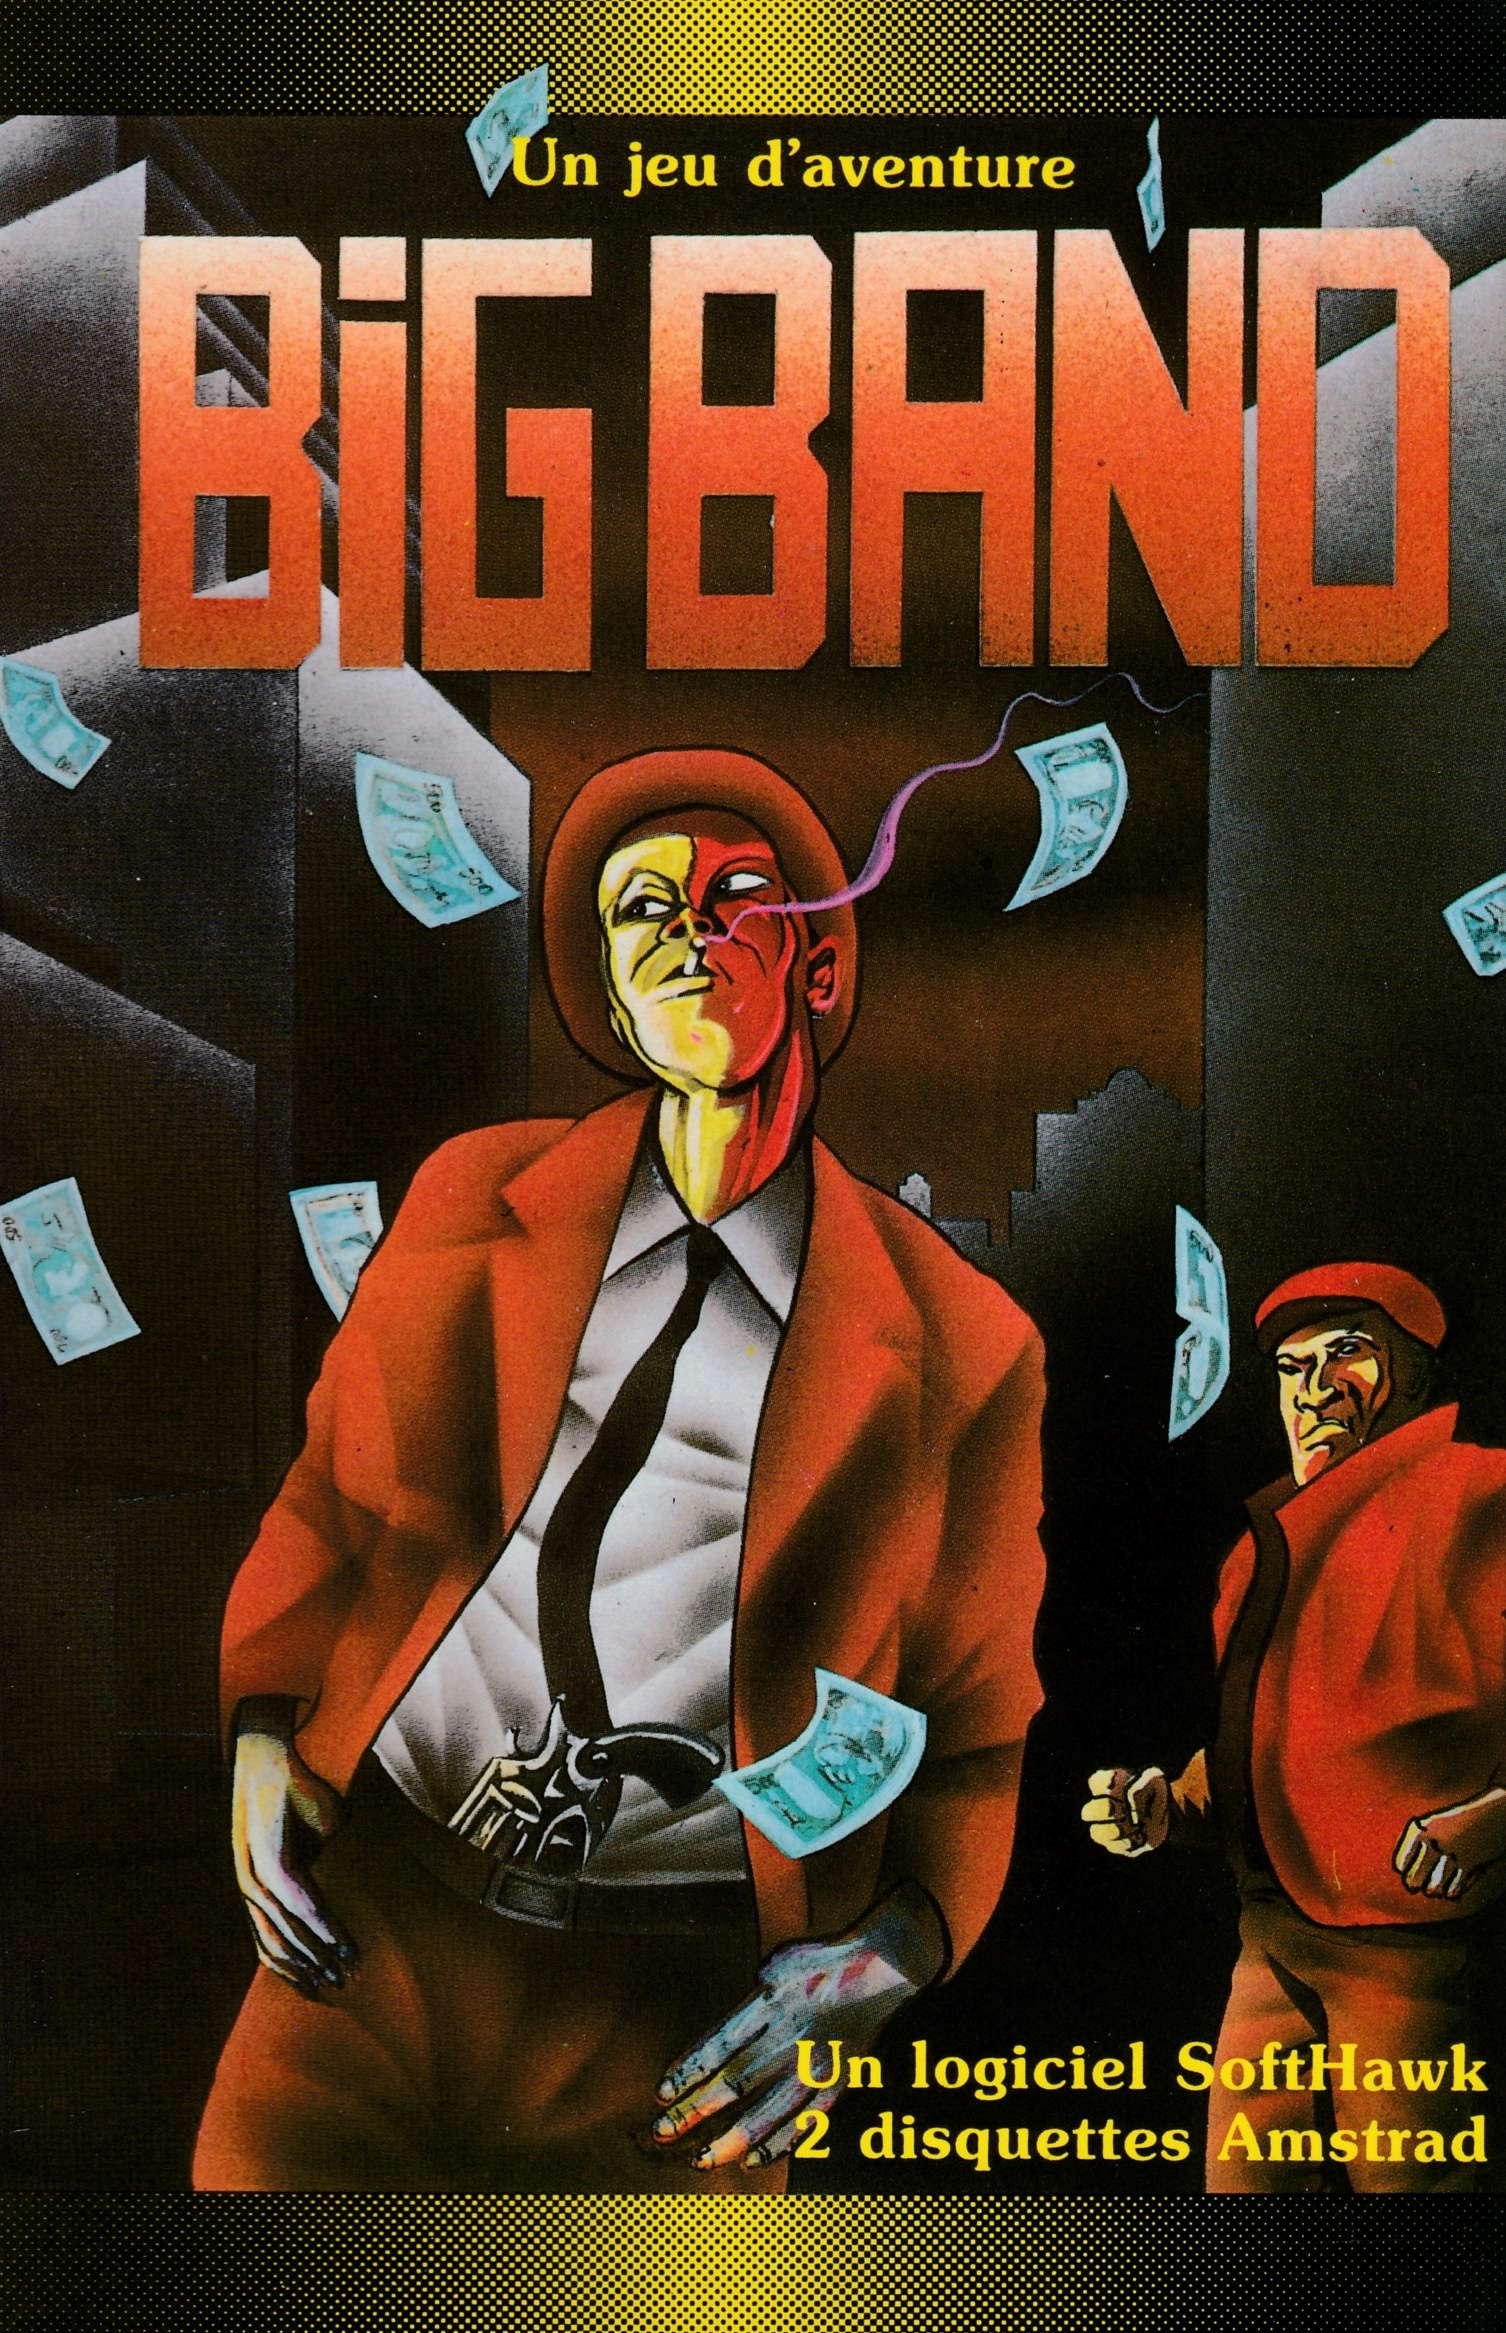 cover of Big Band  provided by GameBase CPC